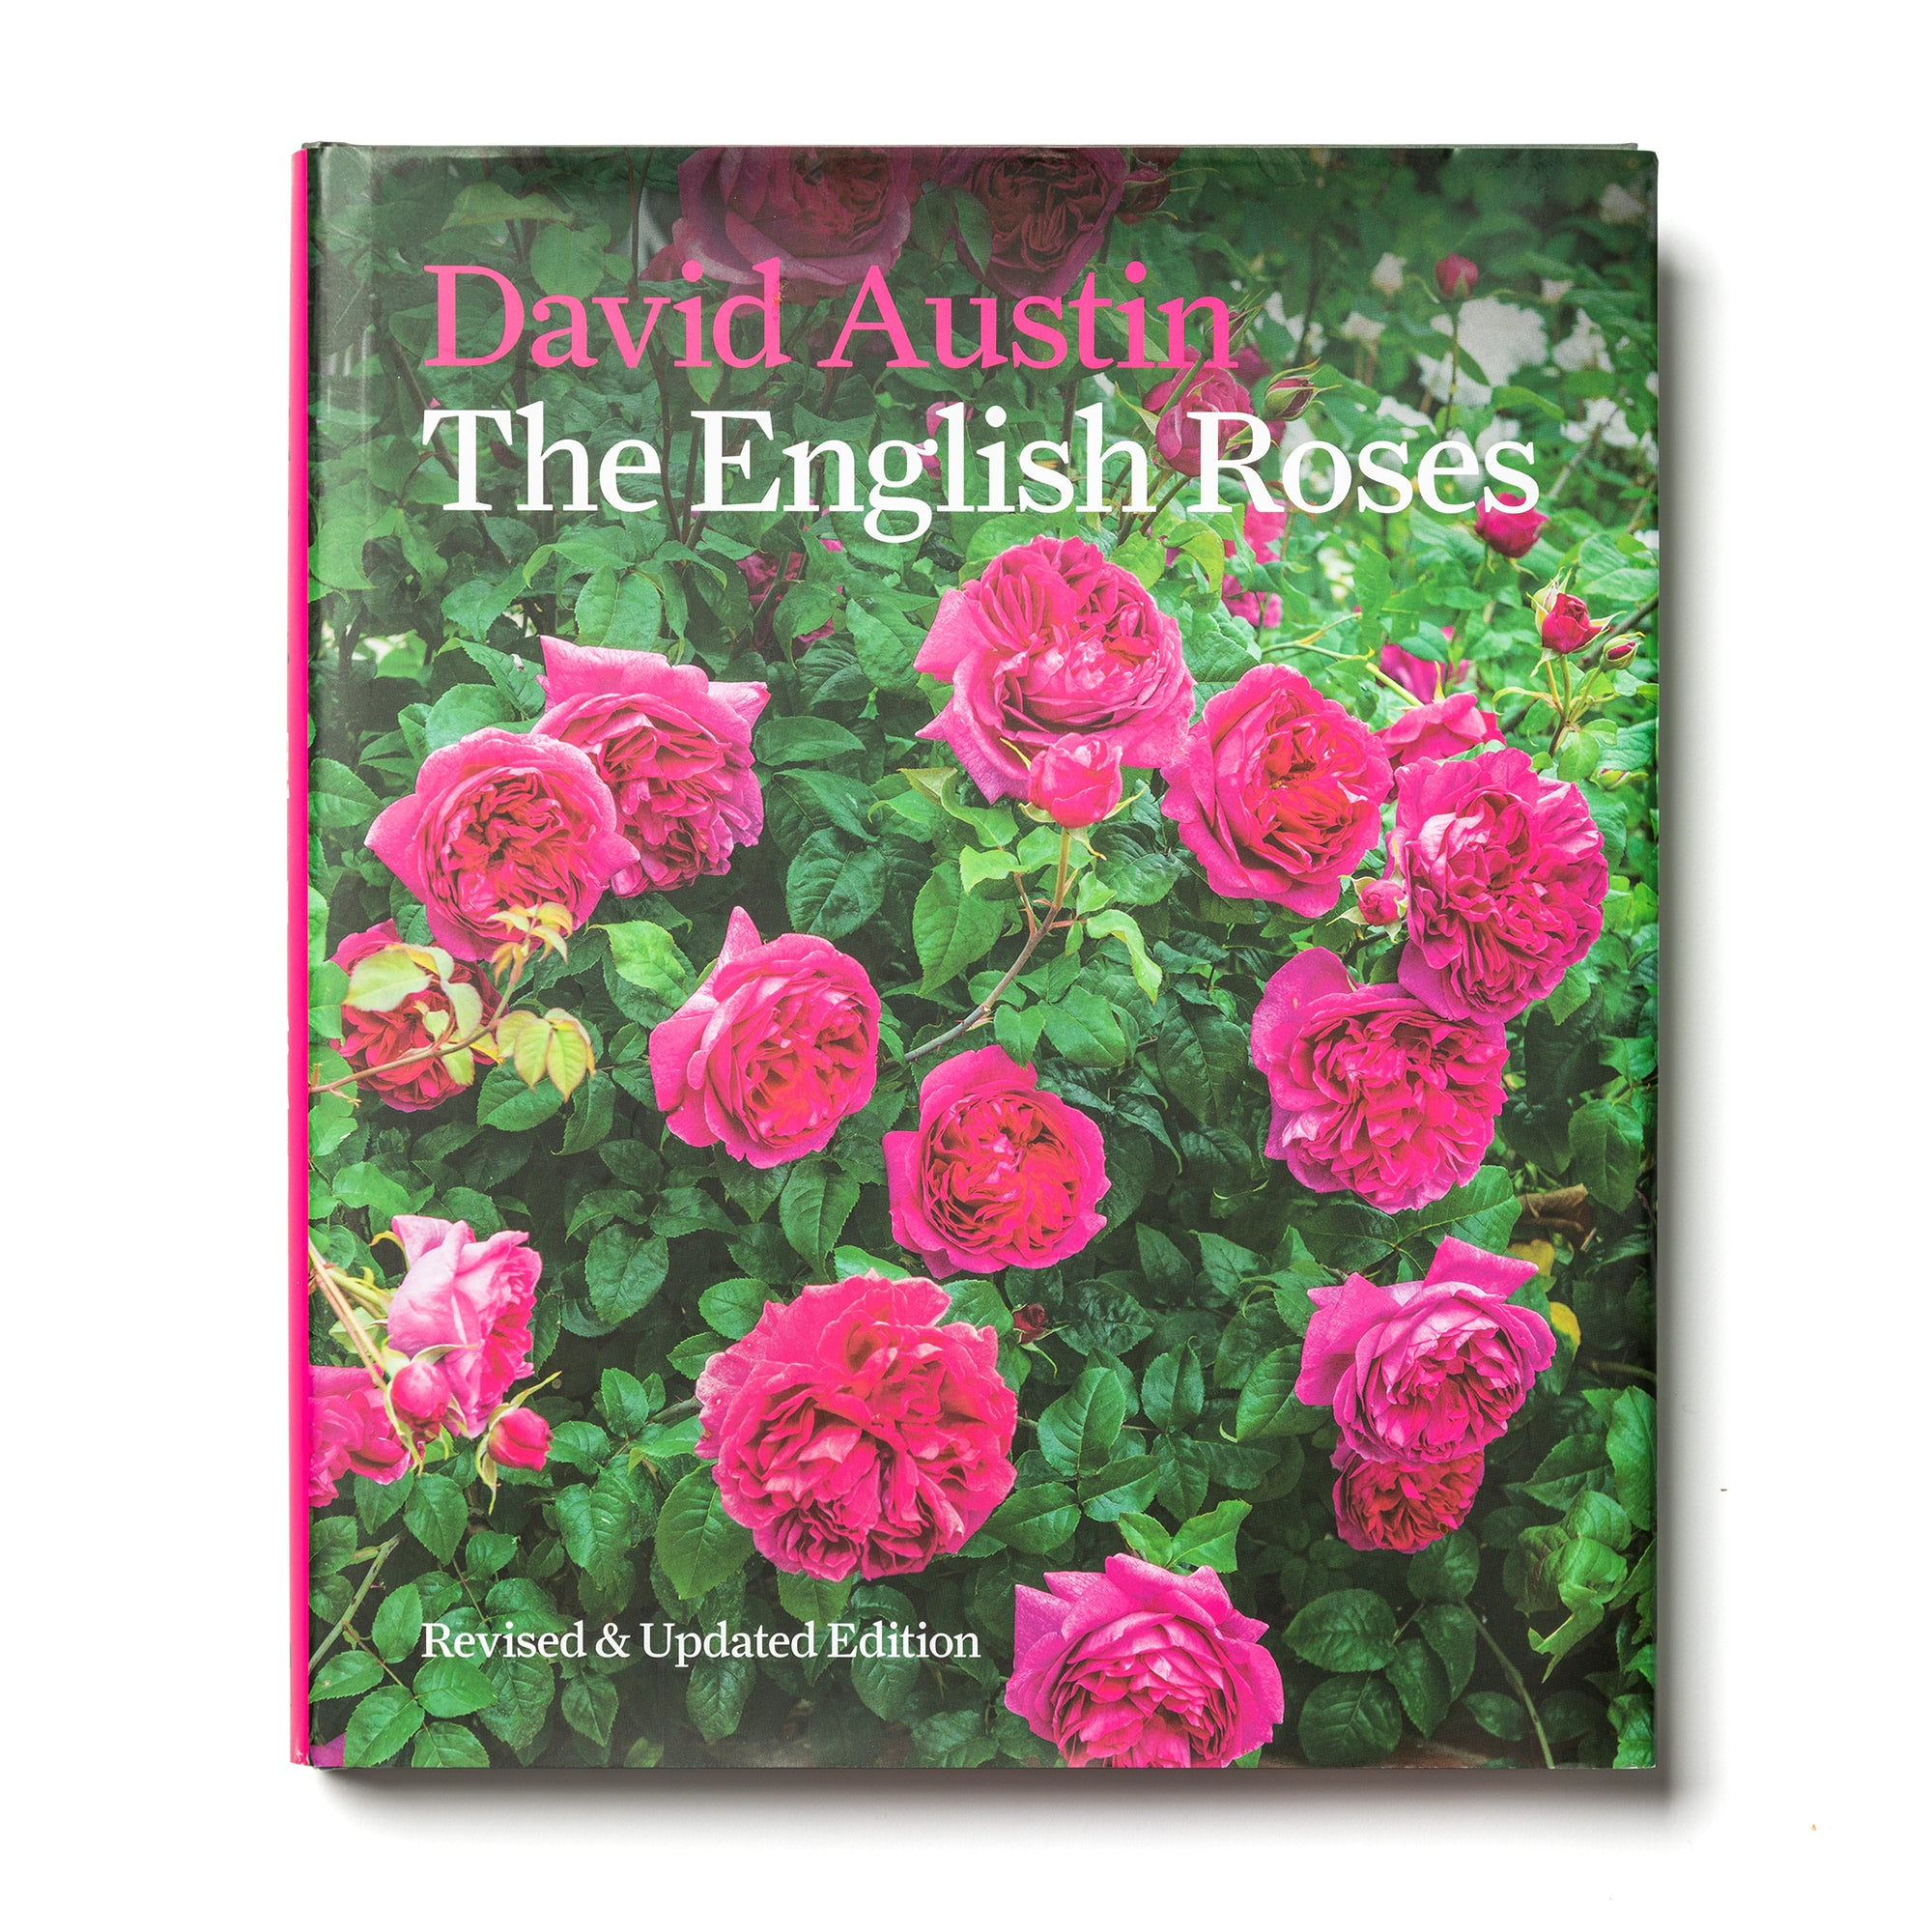 The English Roses by David Austin